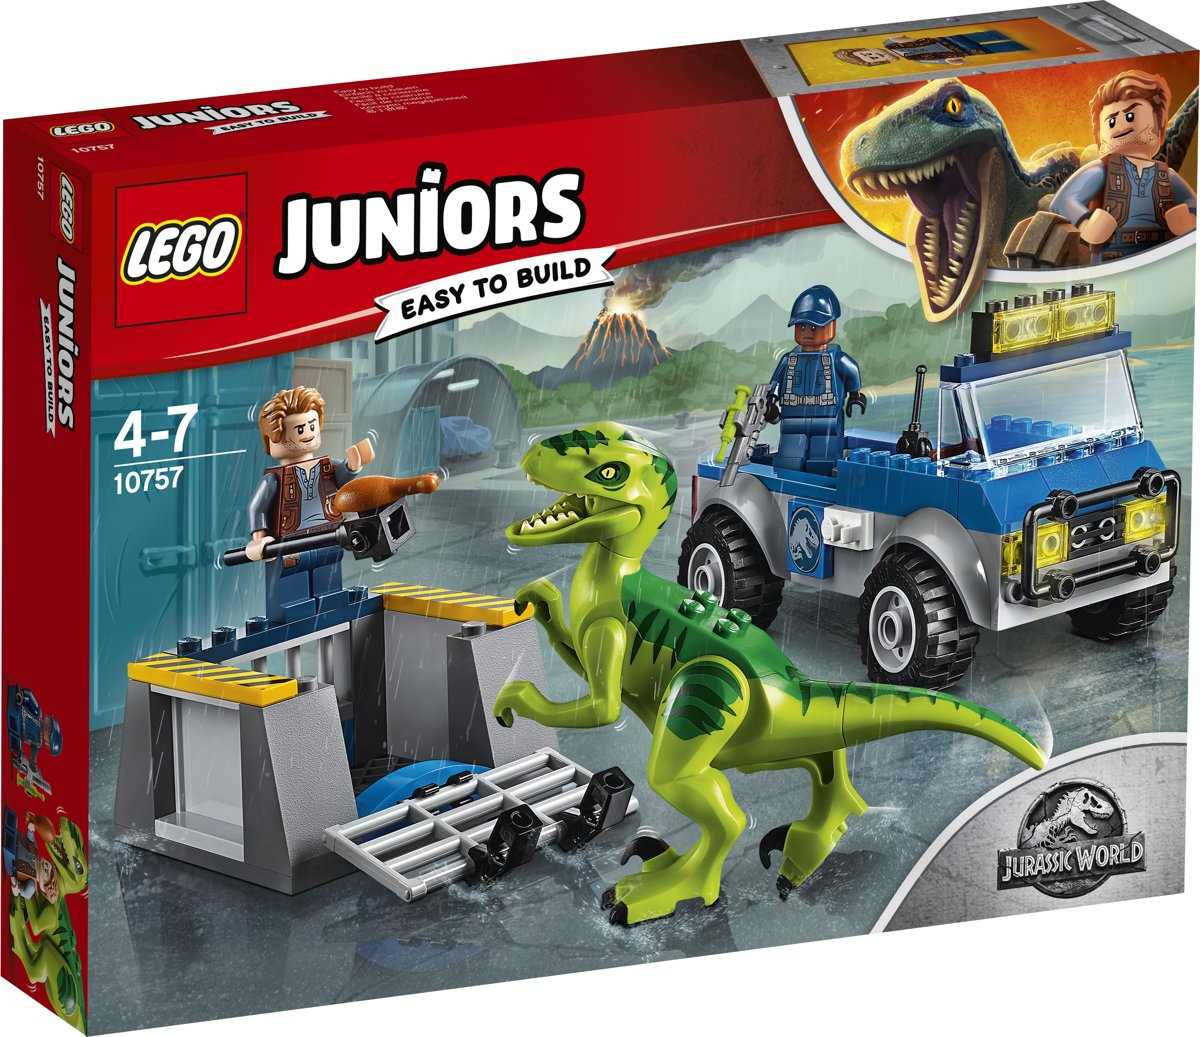 LEGO Juniors Jurassic World Raptor Reddingsauto - 10757